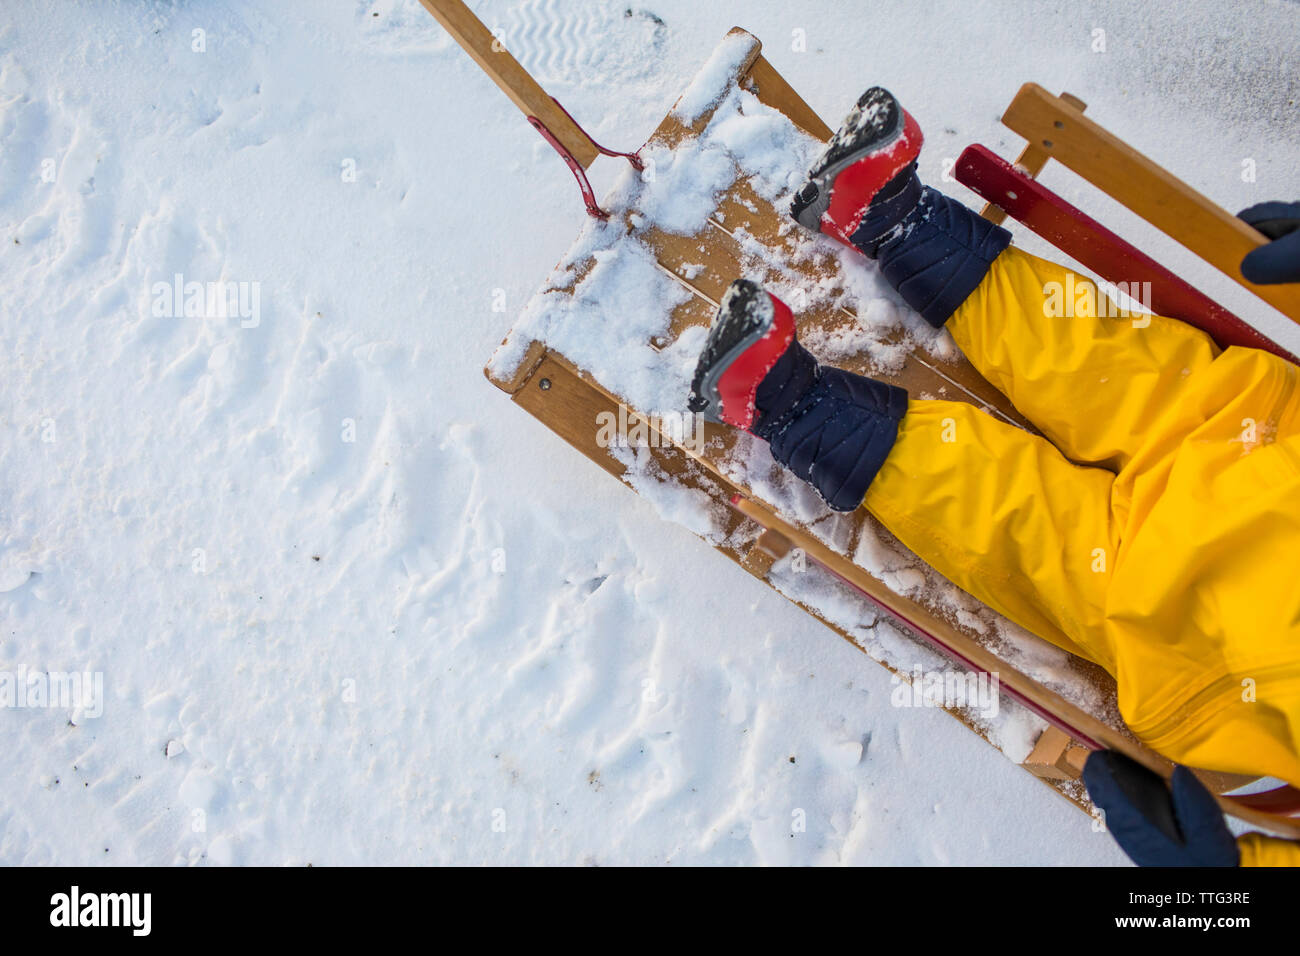 High angle of toddler sitting in wooden sled during winter. - Stock Image